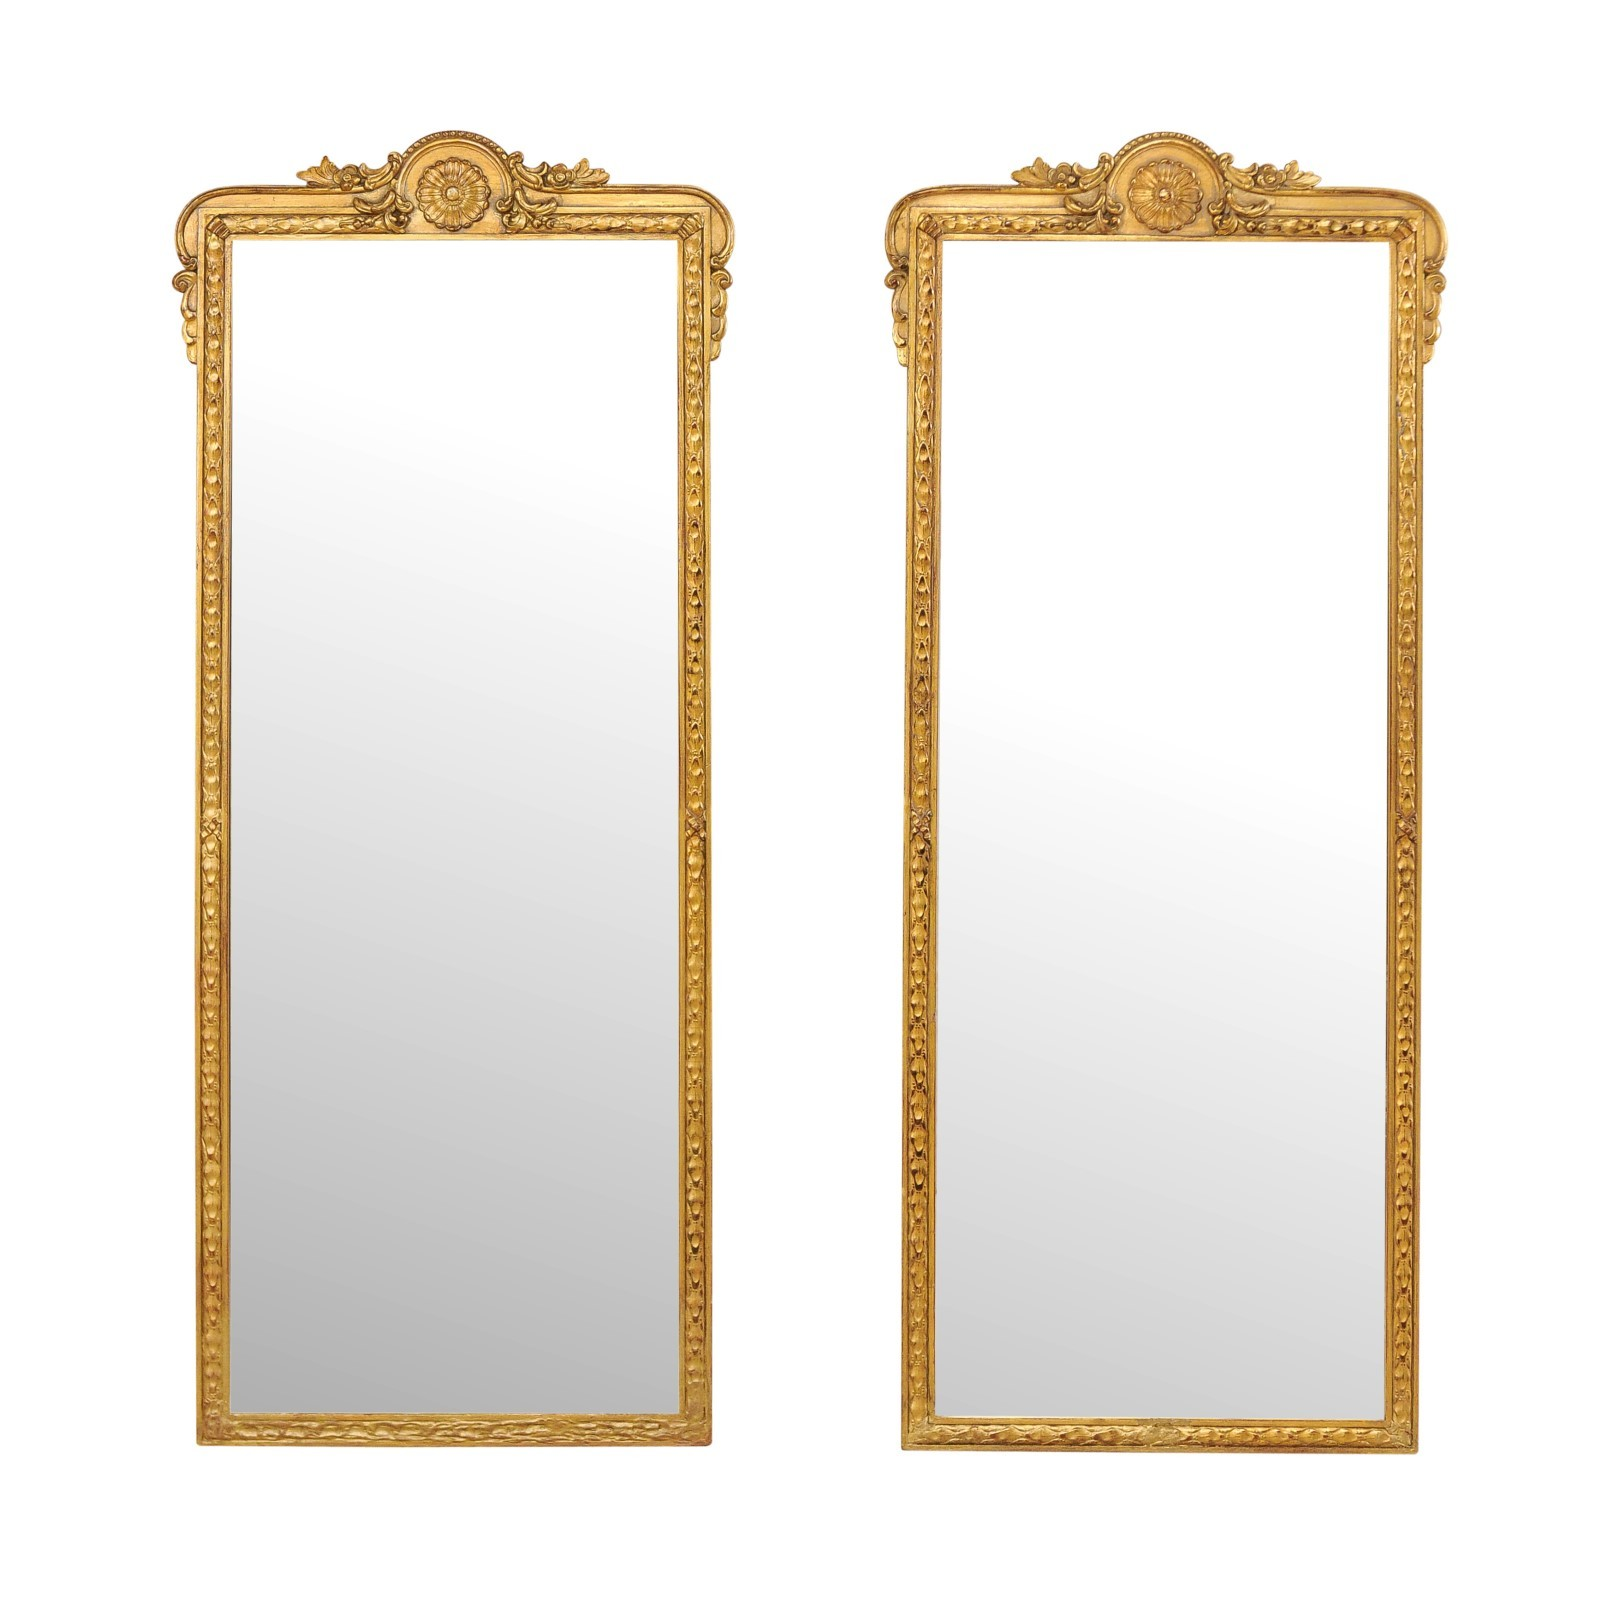 A Pair of Giltwood Mirrors, 4+ ft Tall